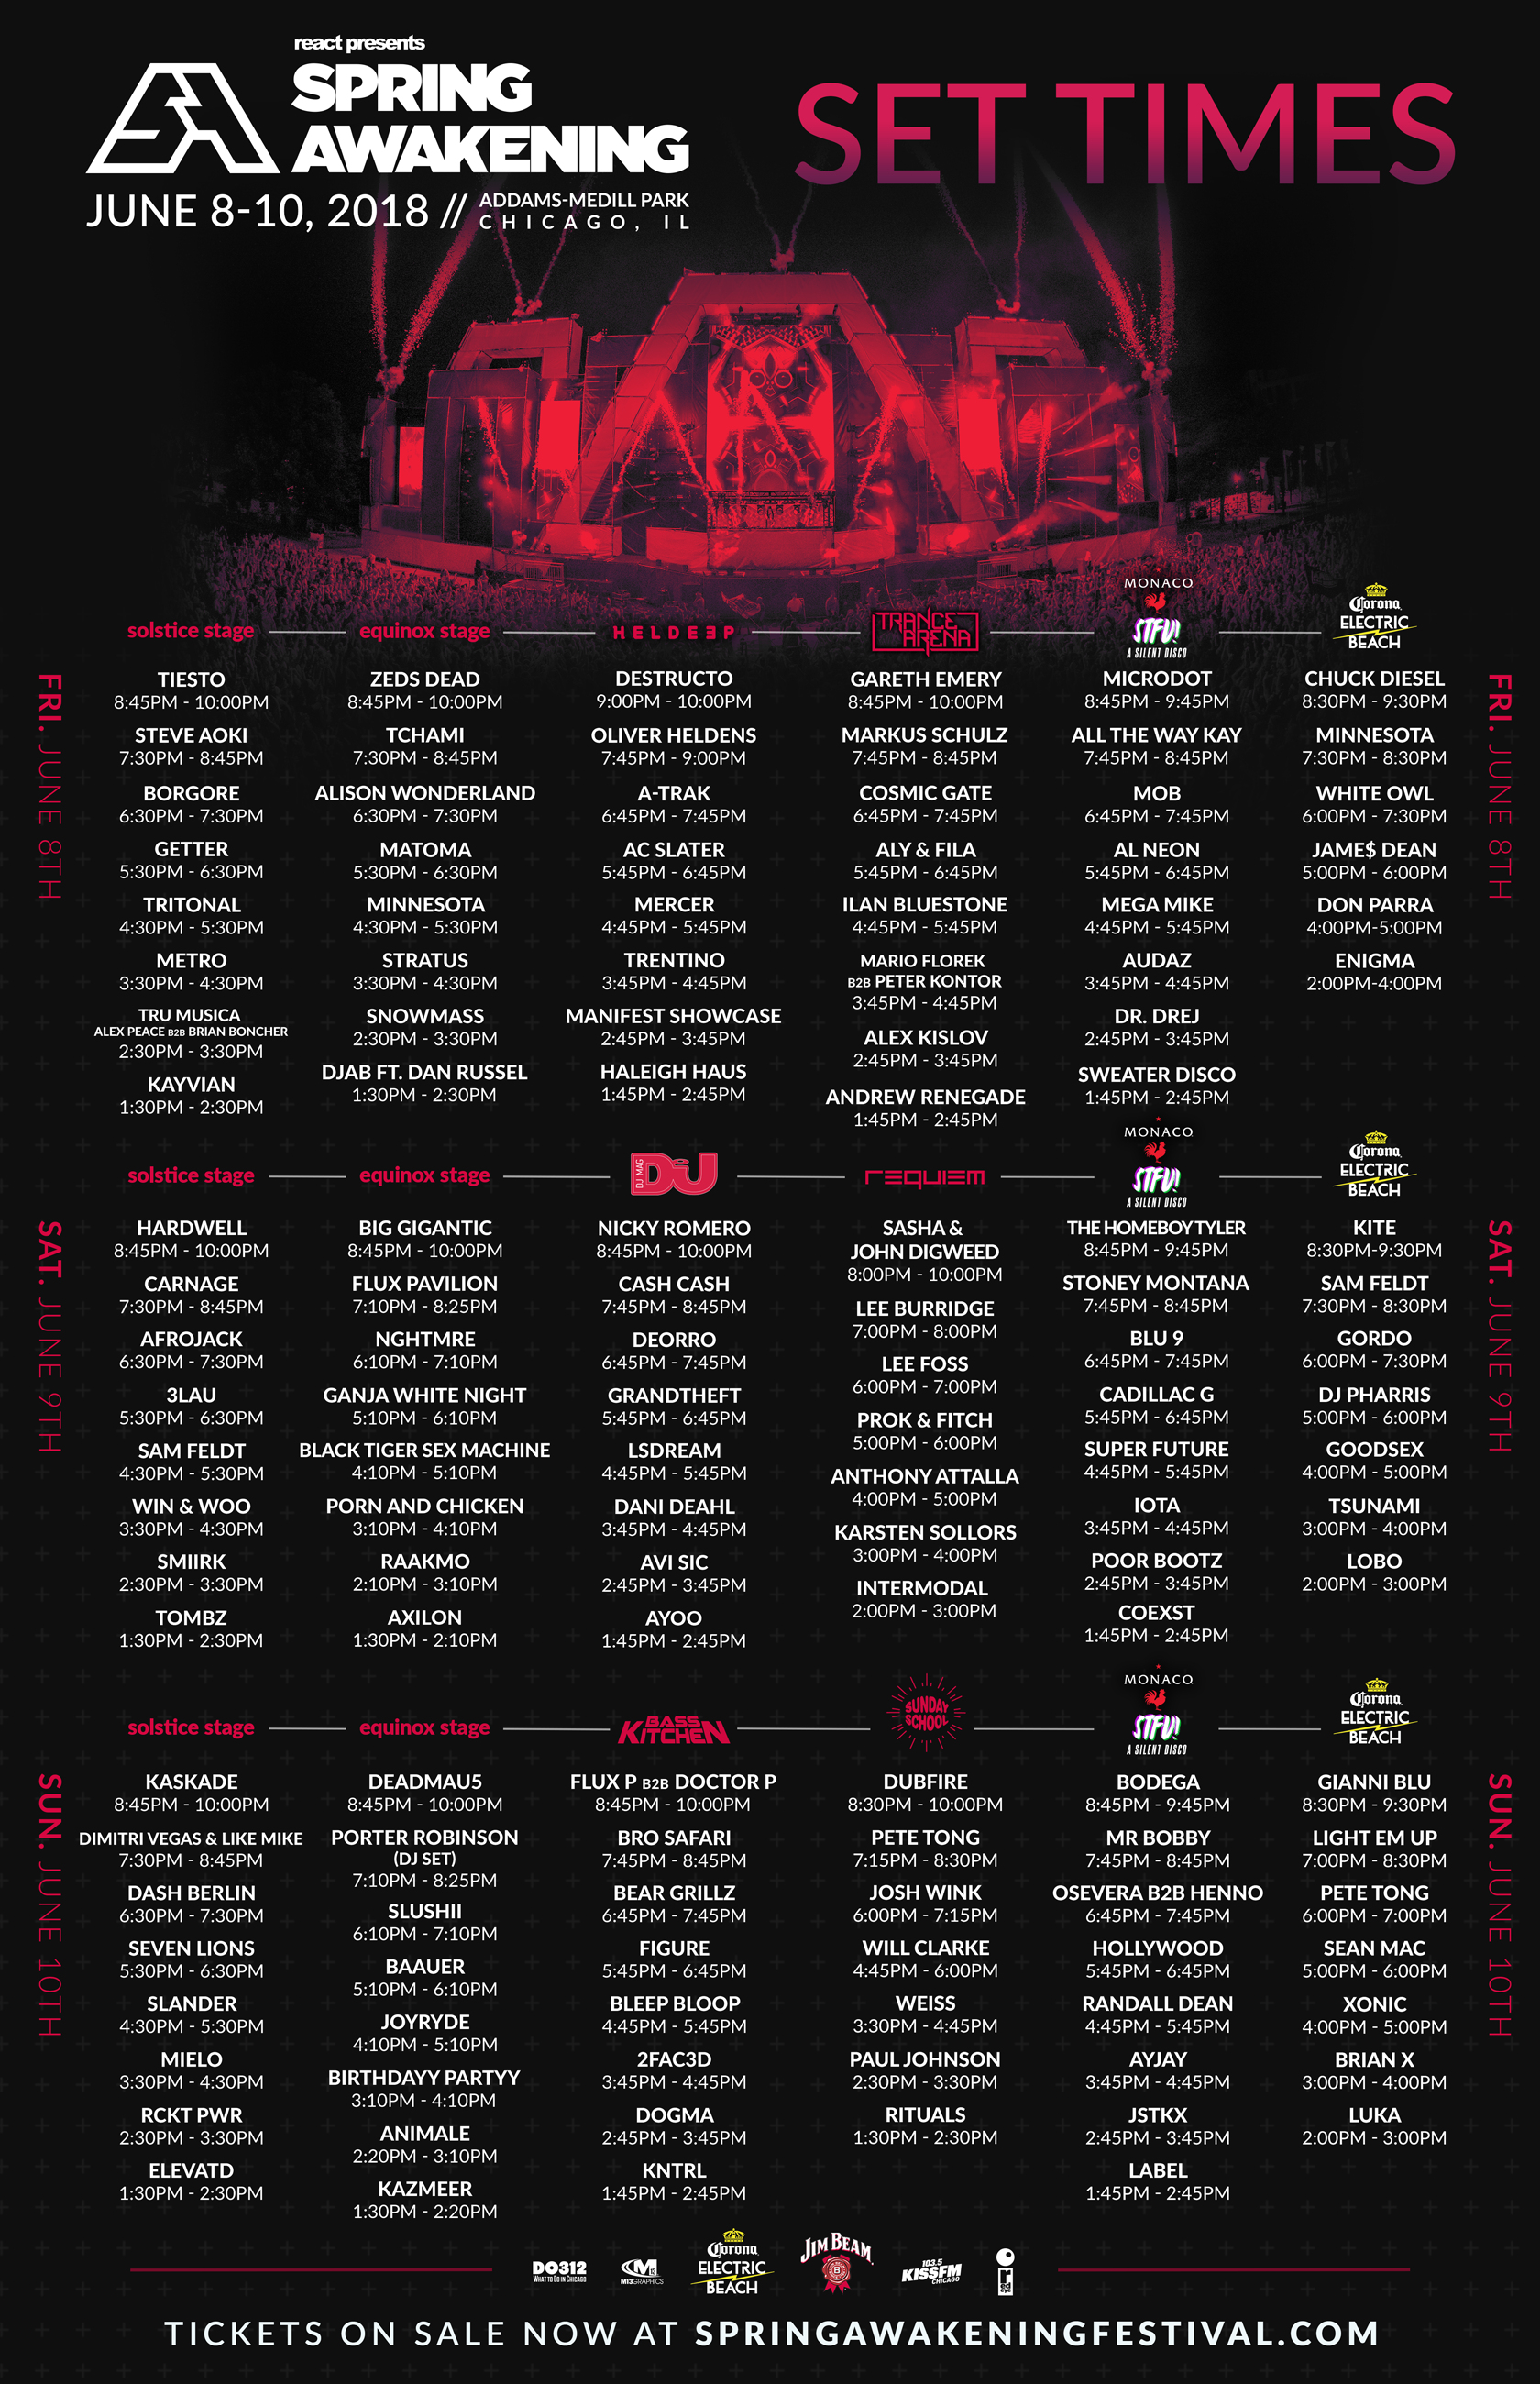 Set times for DJs and stages for Spring Awakening 2018 Chicago.